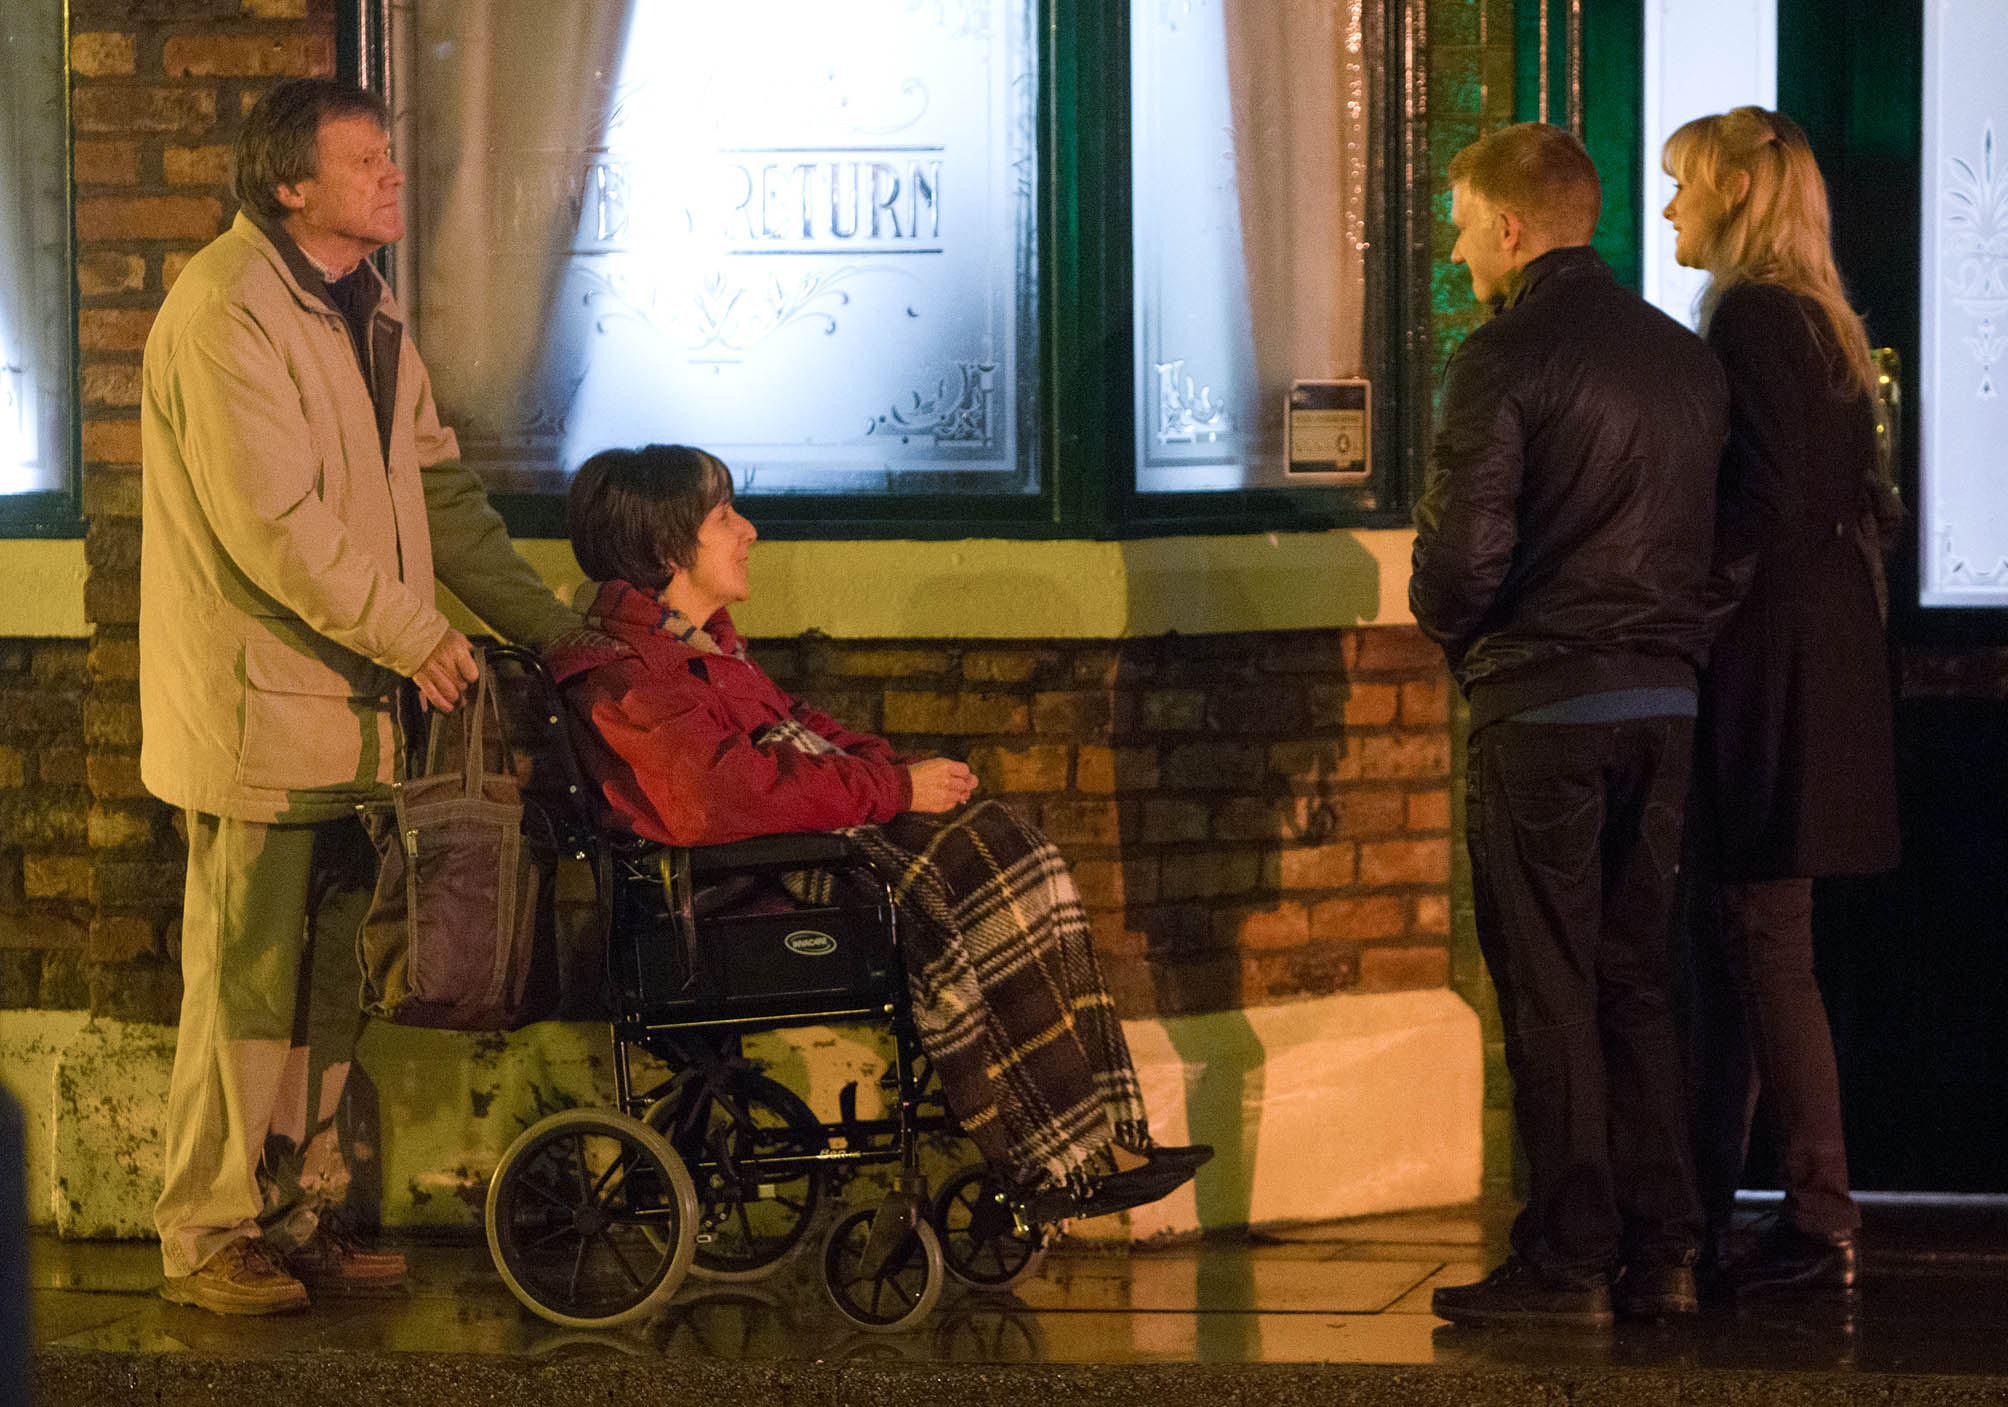 Coronation Street: Is Hayley's heartbreaking storyline hitting too close to home for some?